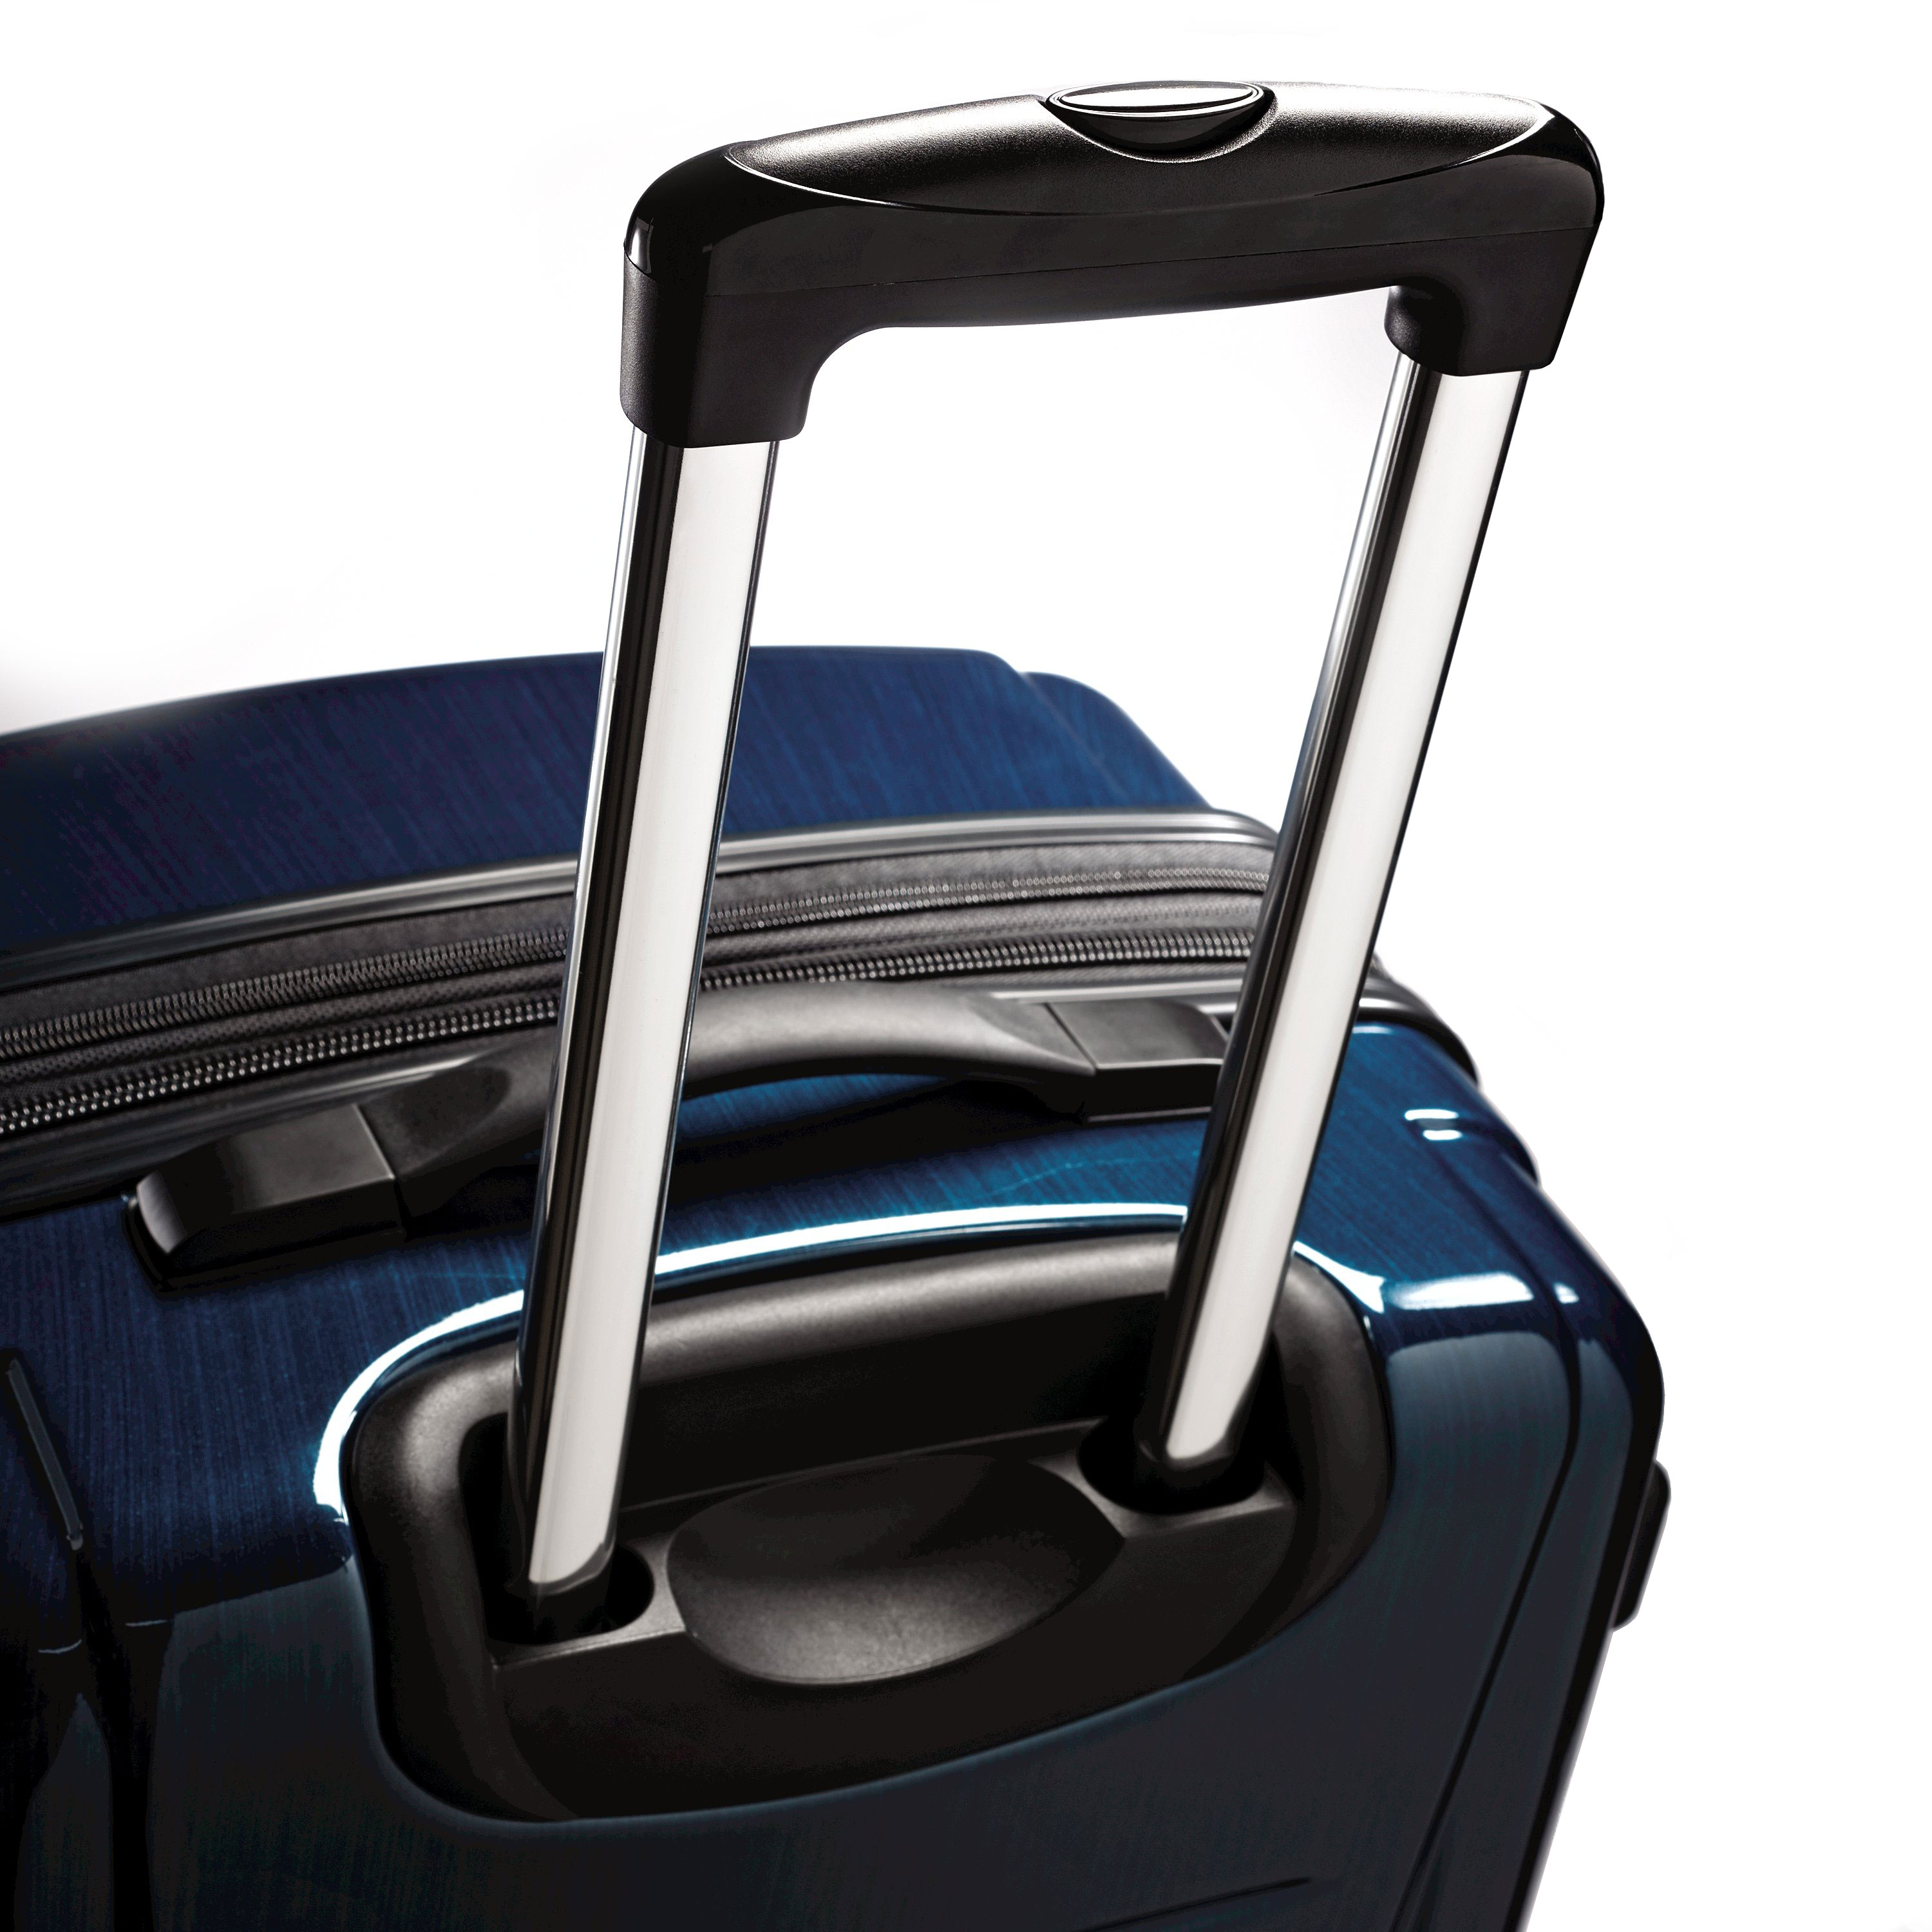 Samsonite-Winfield-2-Fashion-Spinner-Luggage thumbnail 23